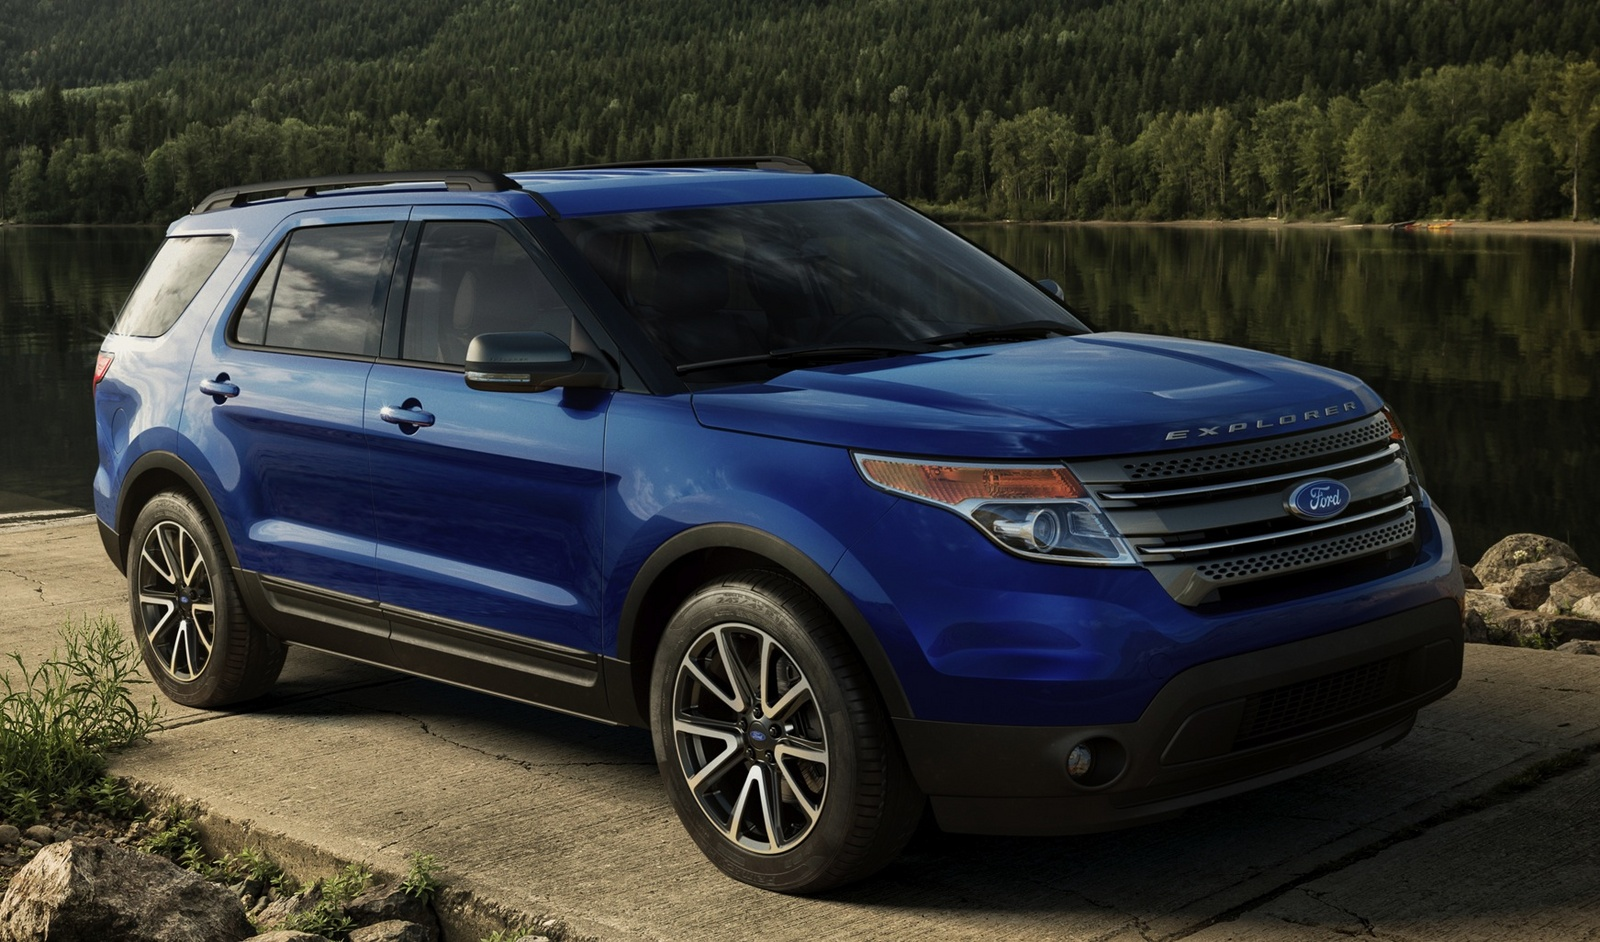 2015 ford explorer review cargurus. Black Bedroom Furniture Sets. Home Design Ideas